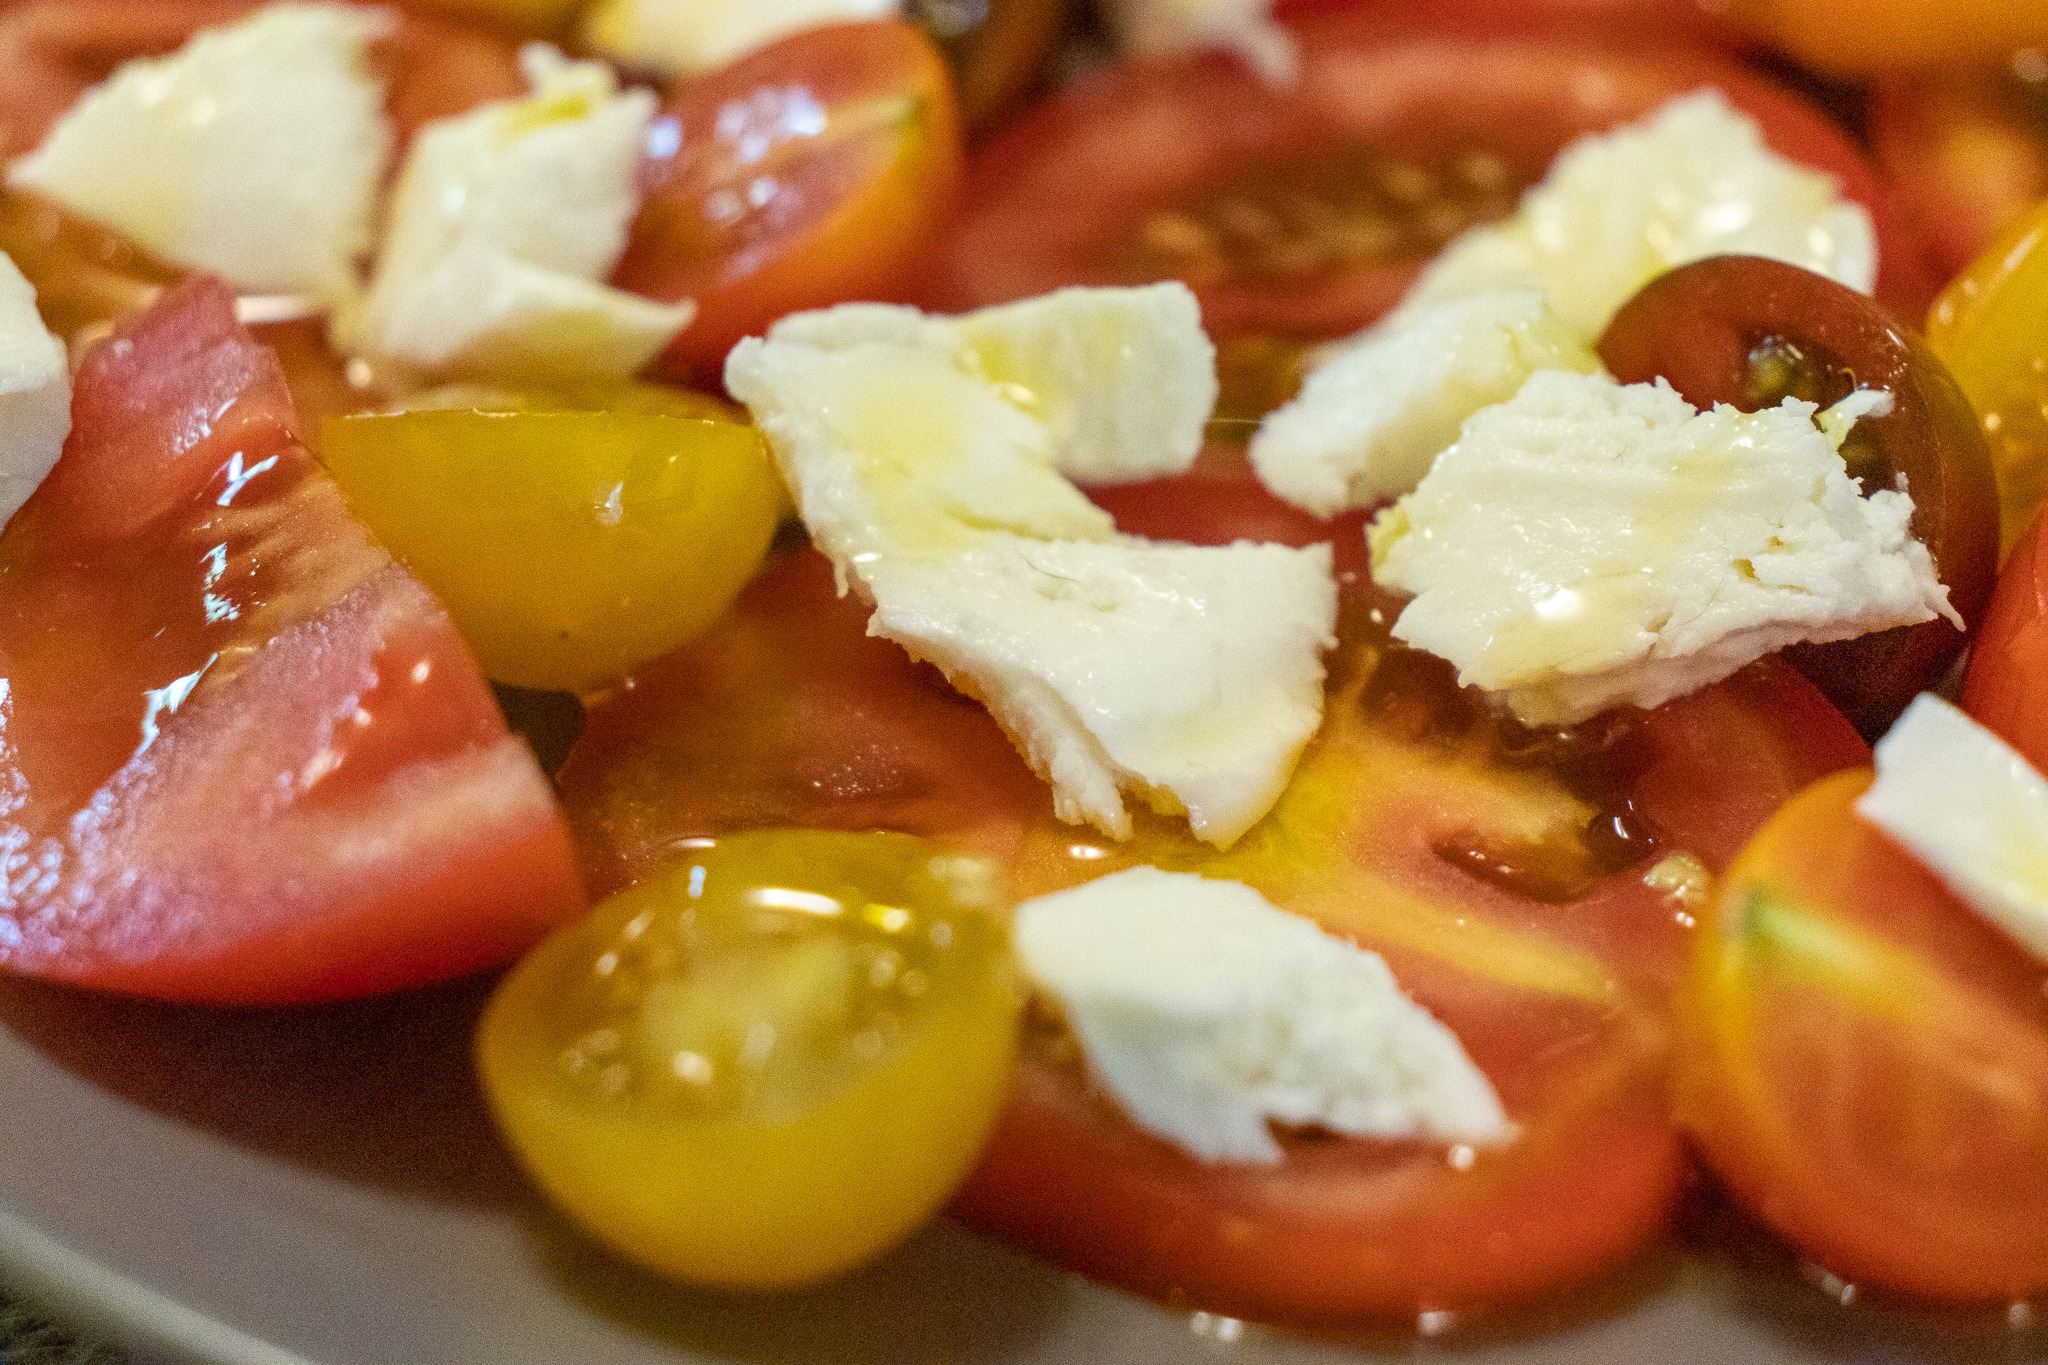 Tomatoes, Mozzarella cheese, and olive oil